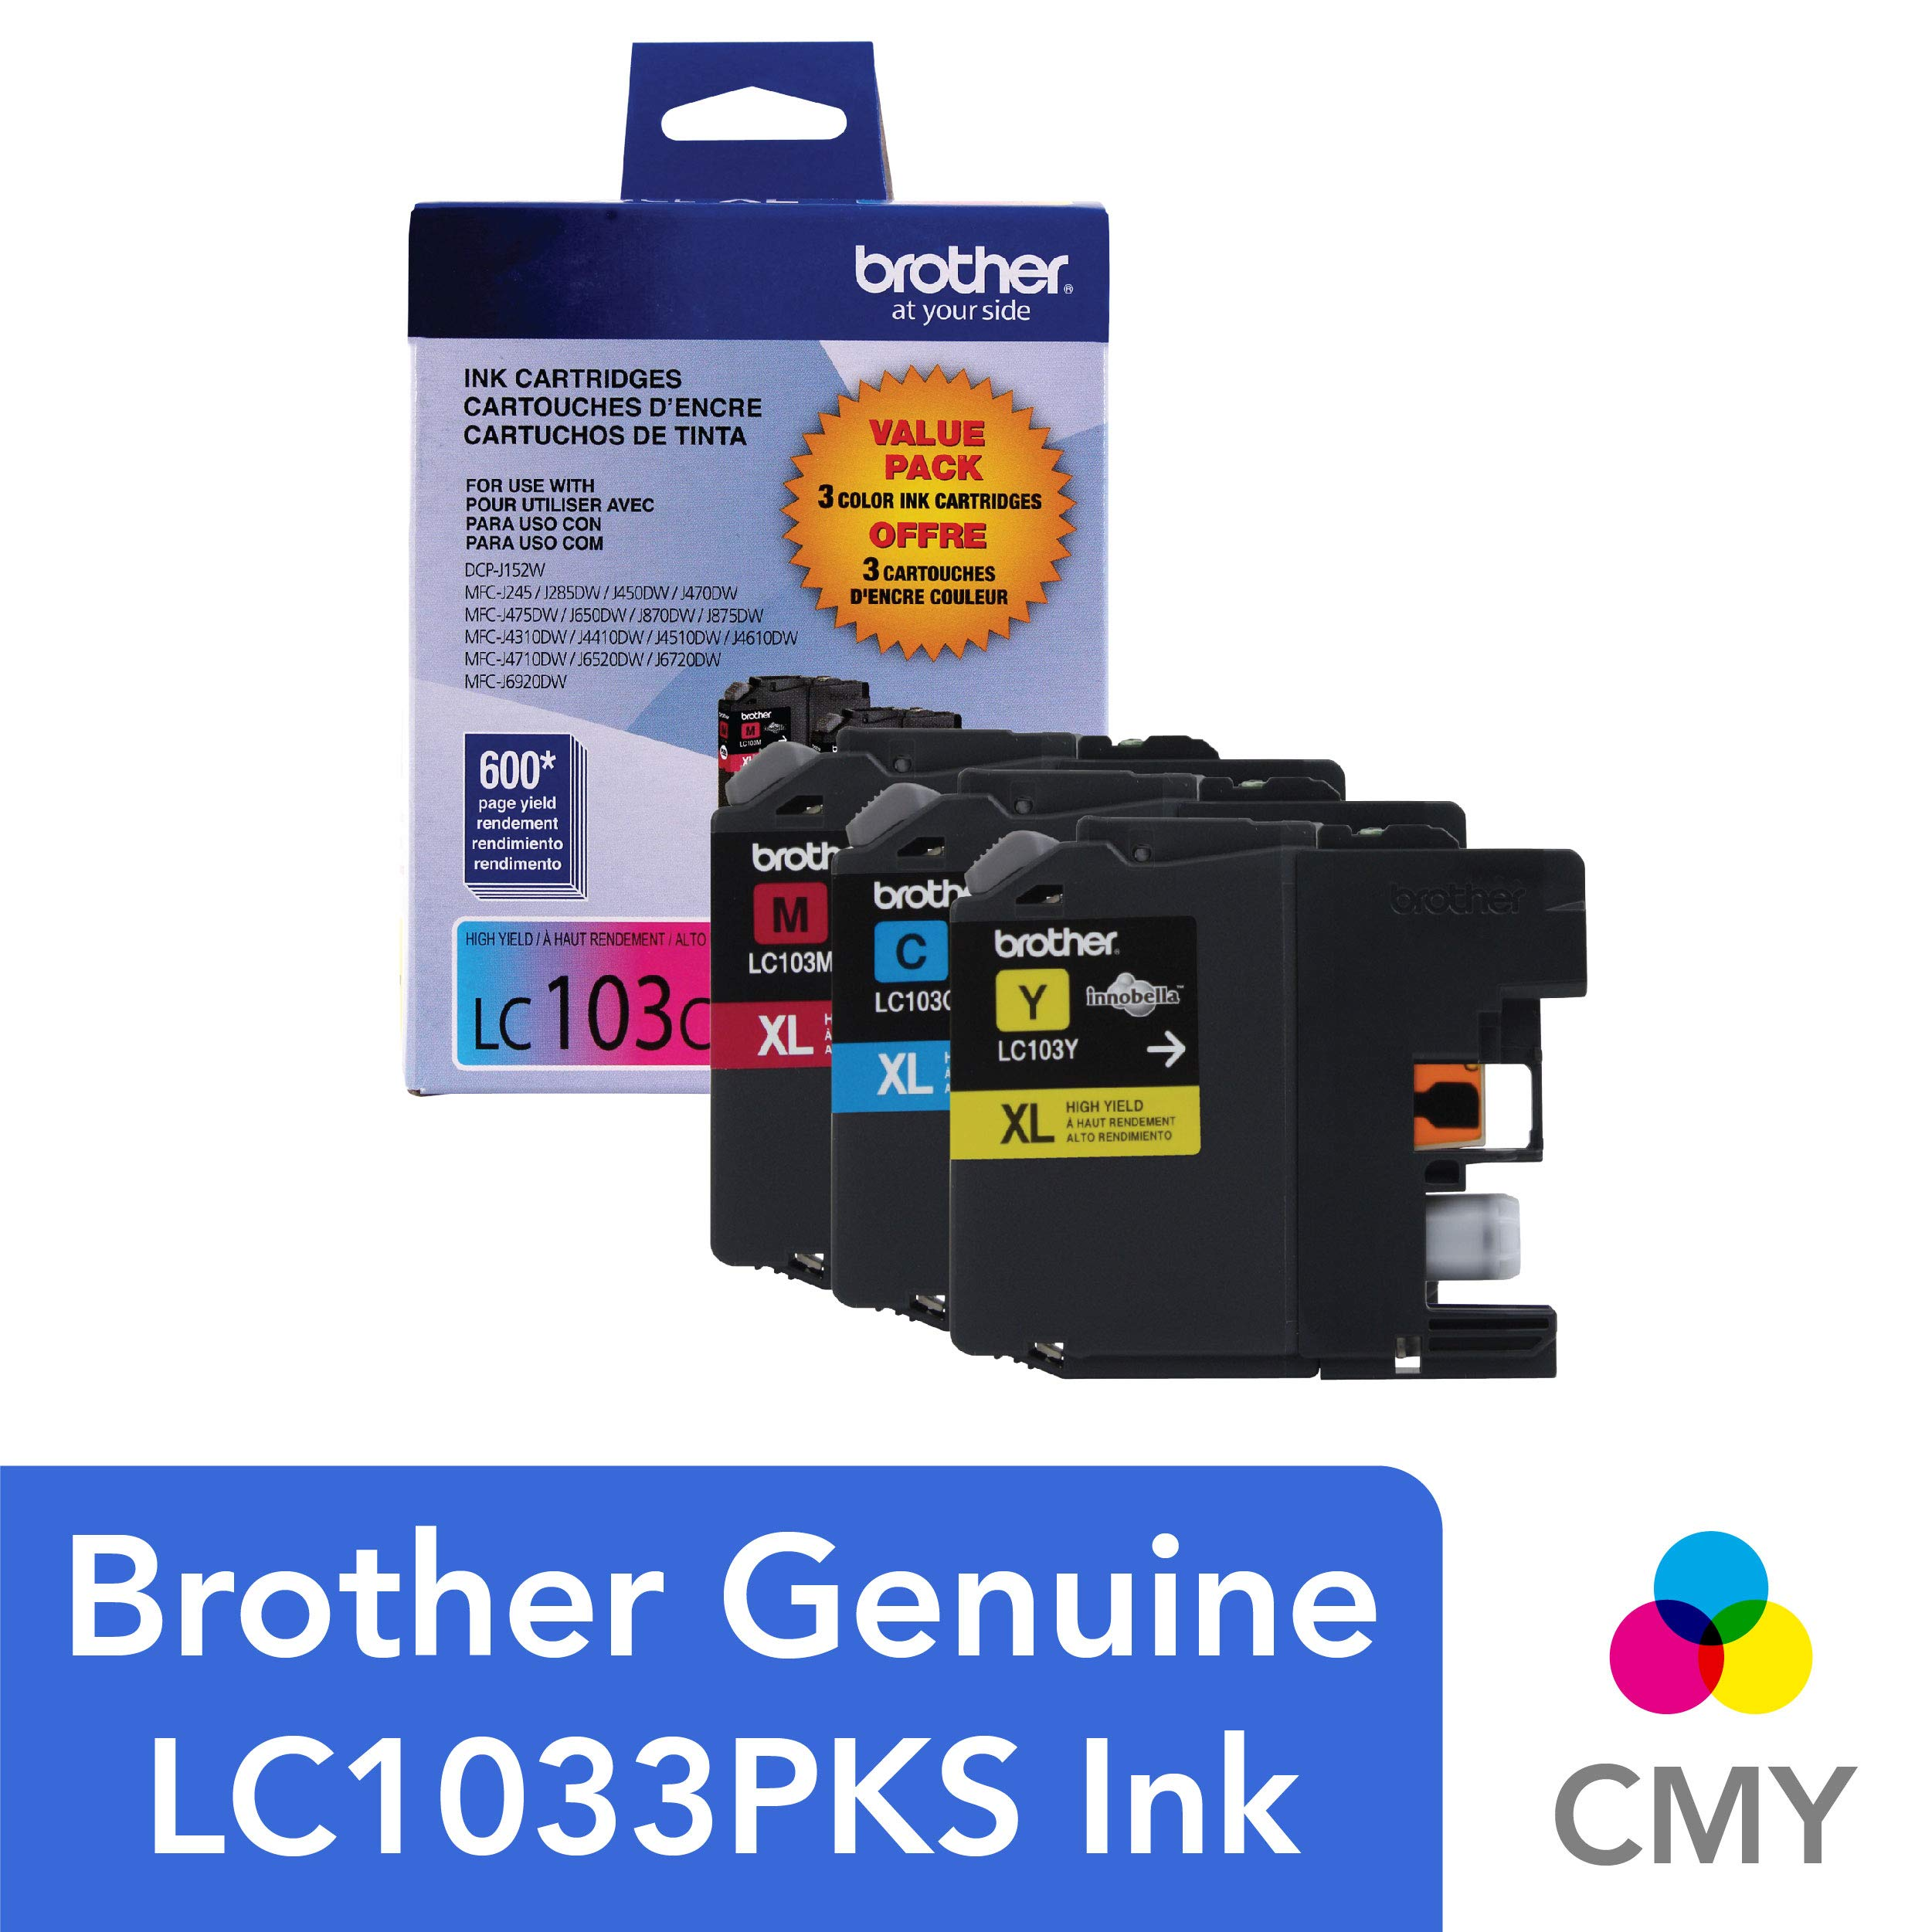 Brother Genuine High Yield Color Ink Cartridge, LC1033PKS, Replacement Color Ink Three Pack, Includes 1 Cartridge Each of Cyan, Magenta & Yellow, Page Yield Up To 600 Pages/Cartridge, LC103 by Brother